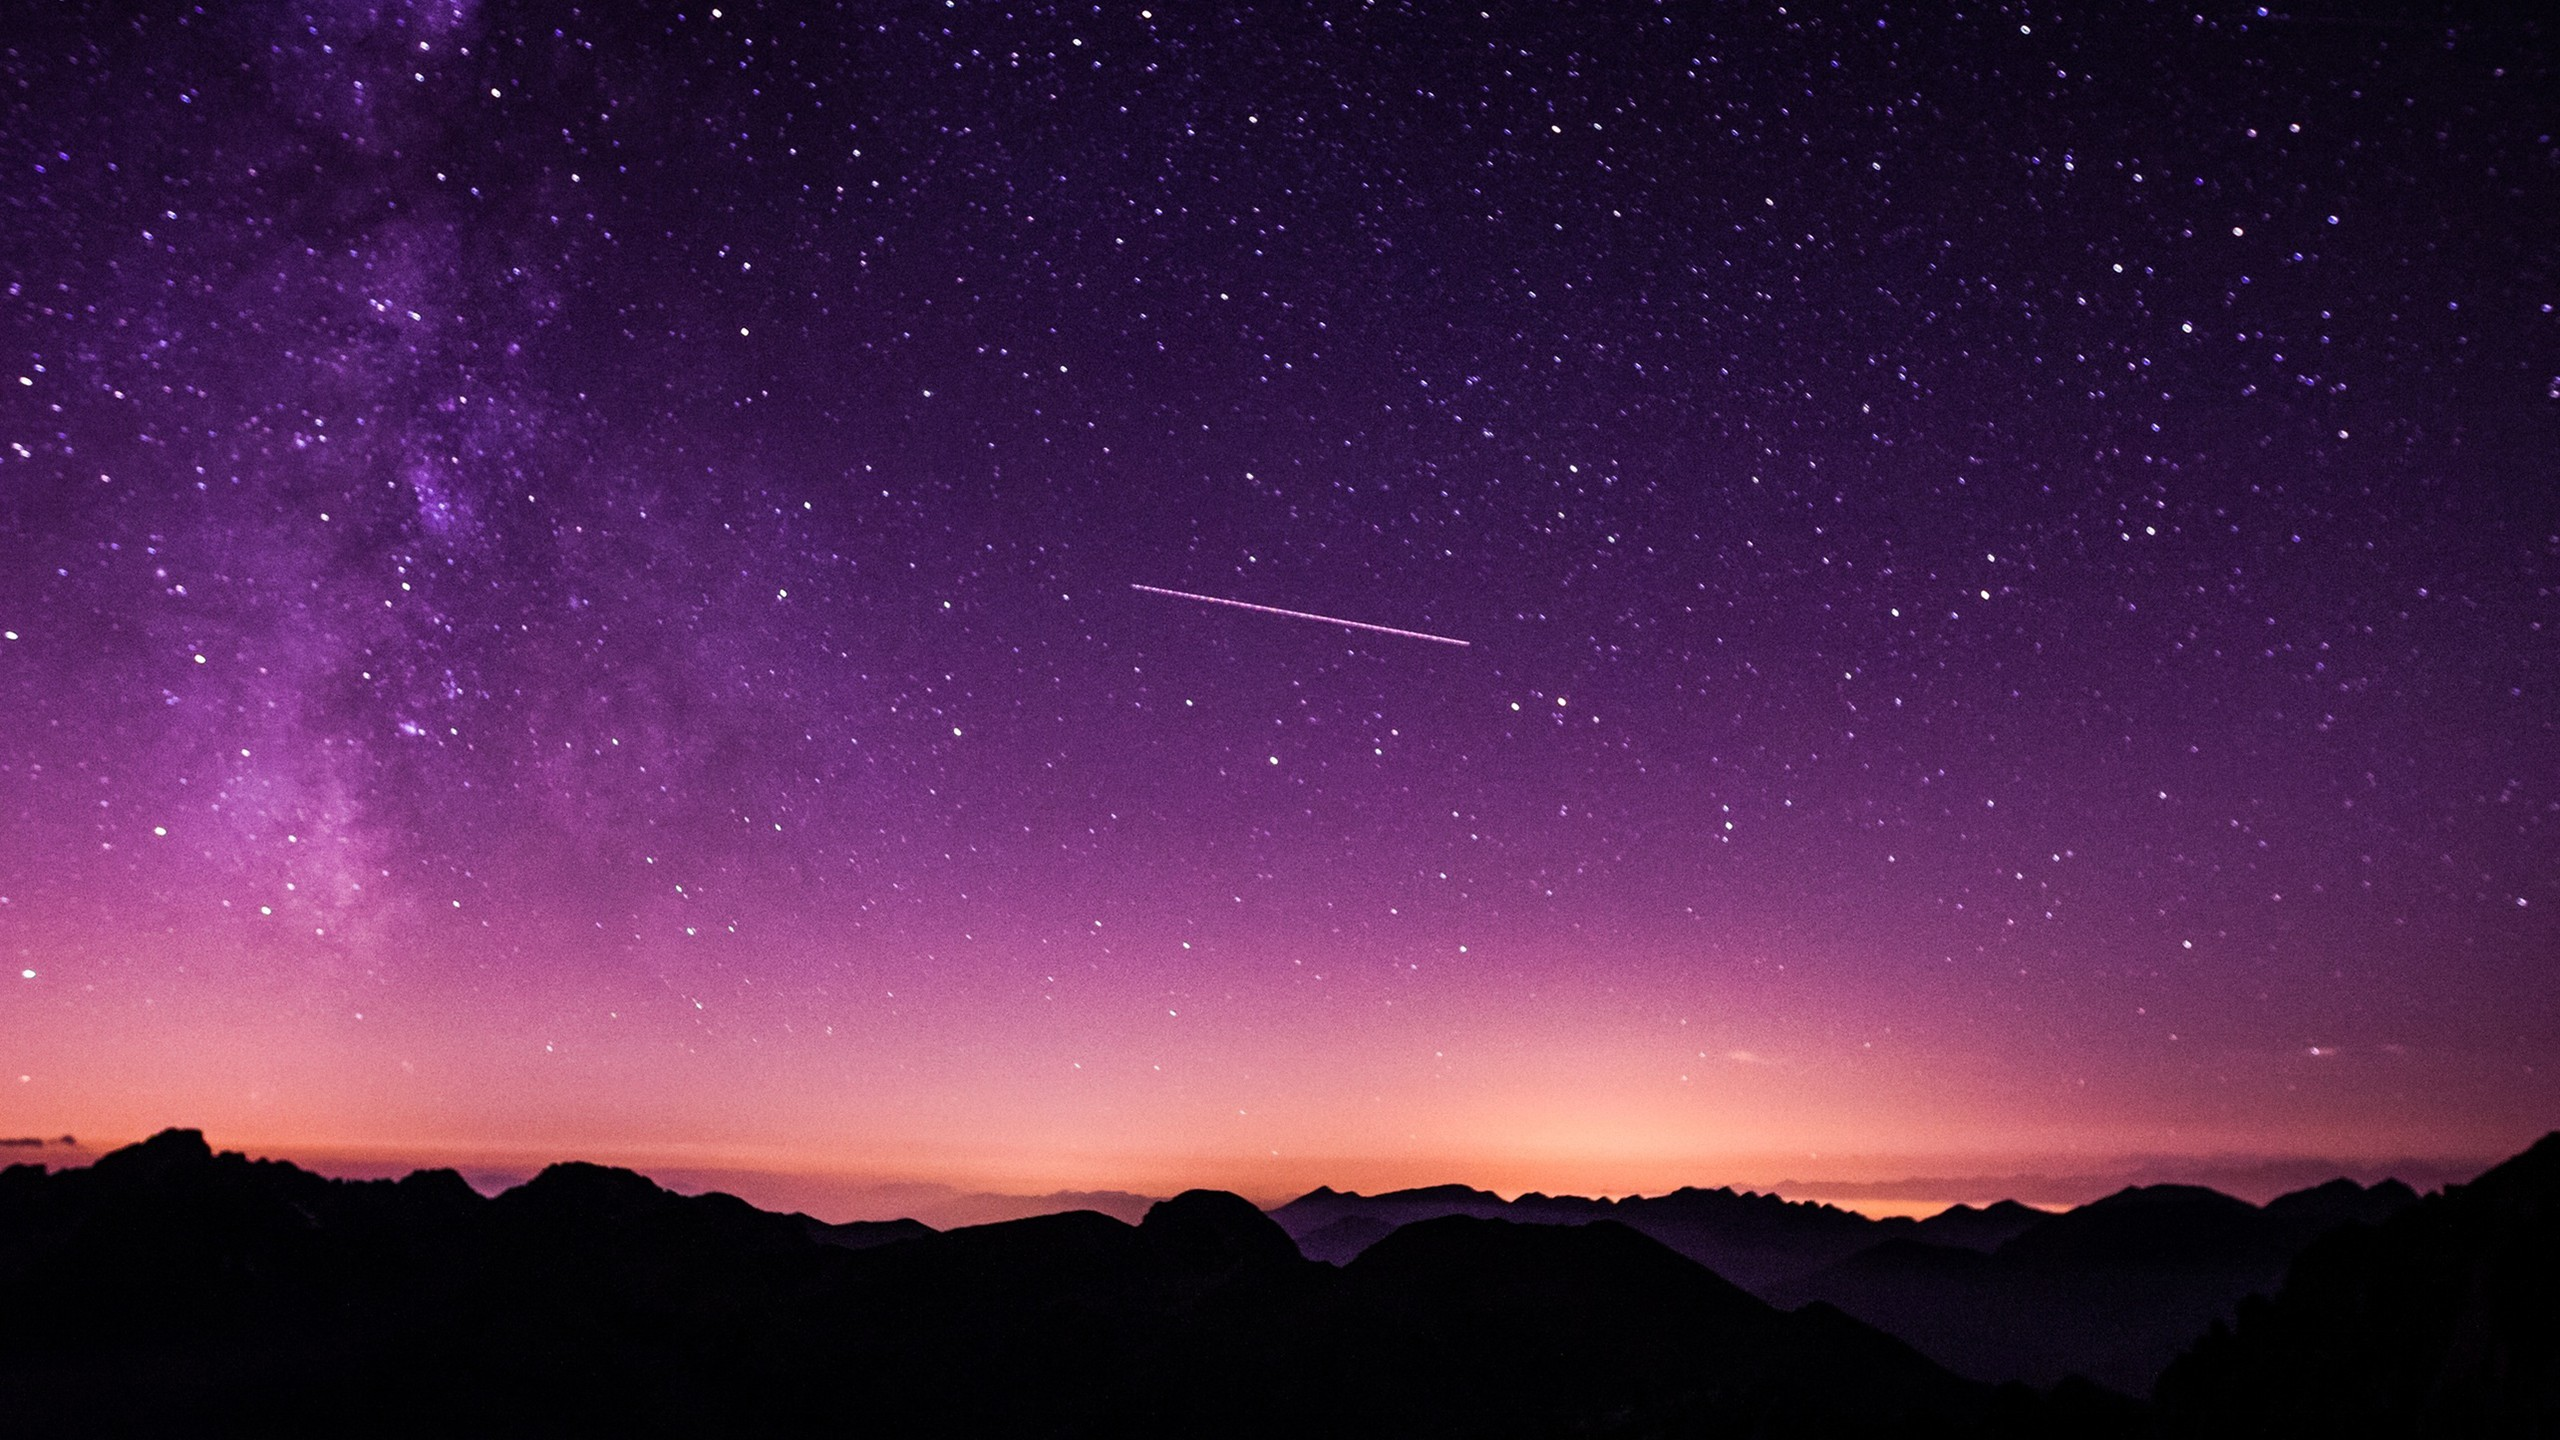 Iphone 5 Wallpaper Photography Purple Starry Sky Wallpapers Hd Wallpapers Id 25894